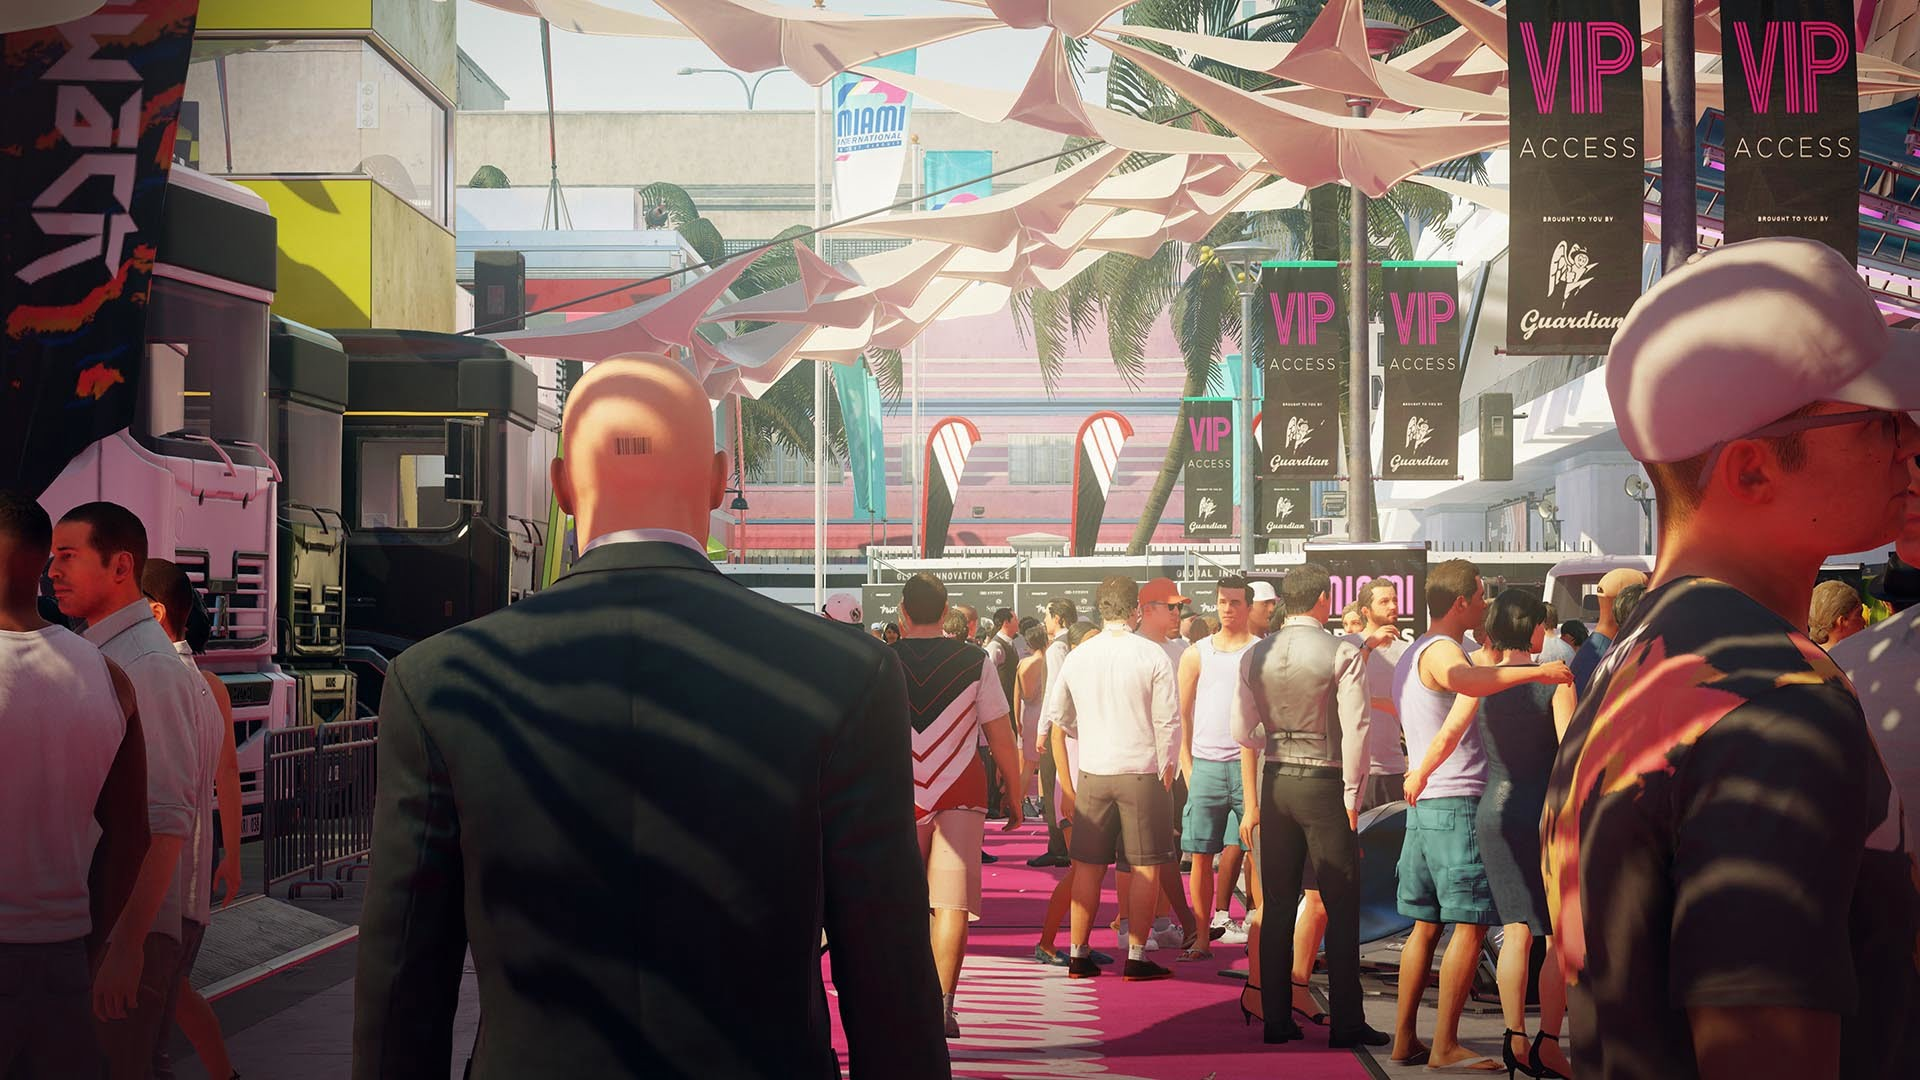 This sequel offers plenty of reasons to revisit the world of assassination, whether you're an experienced hitman or just trying out the fiber wire for the first time.